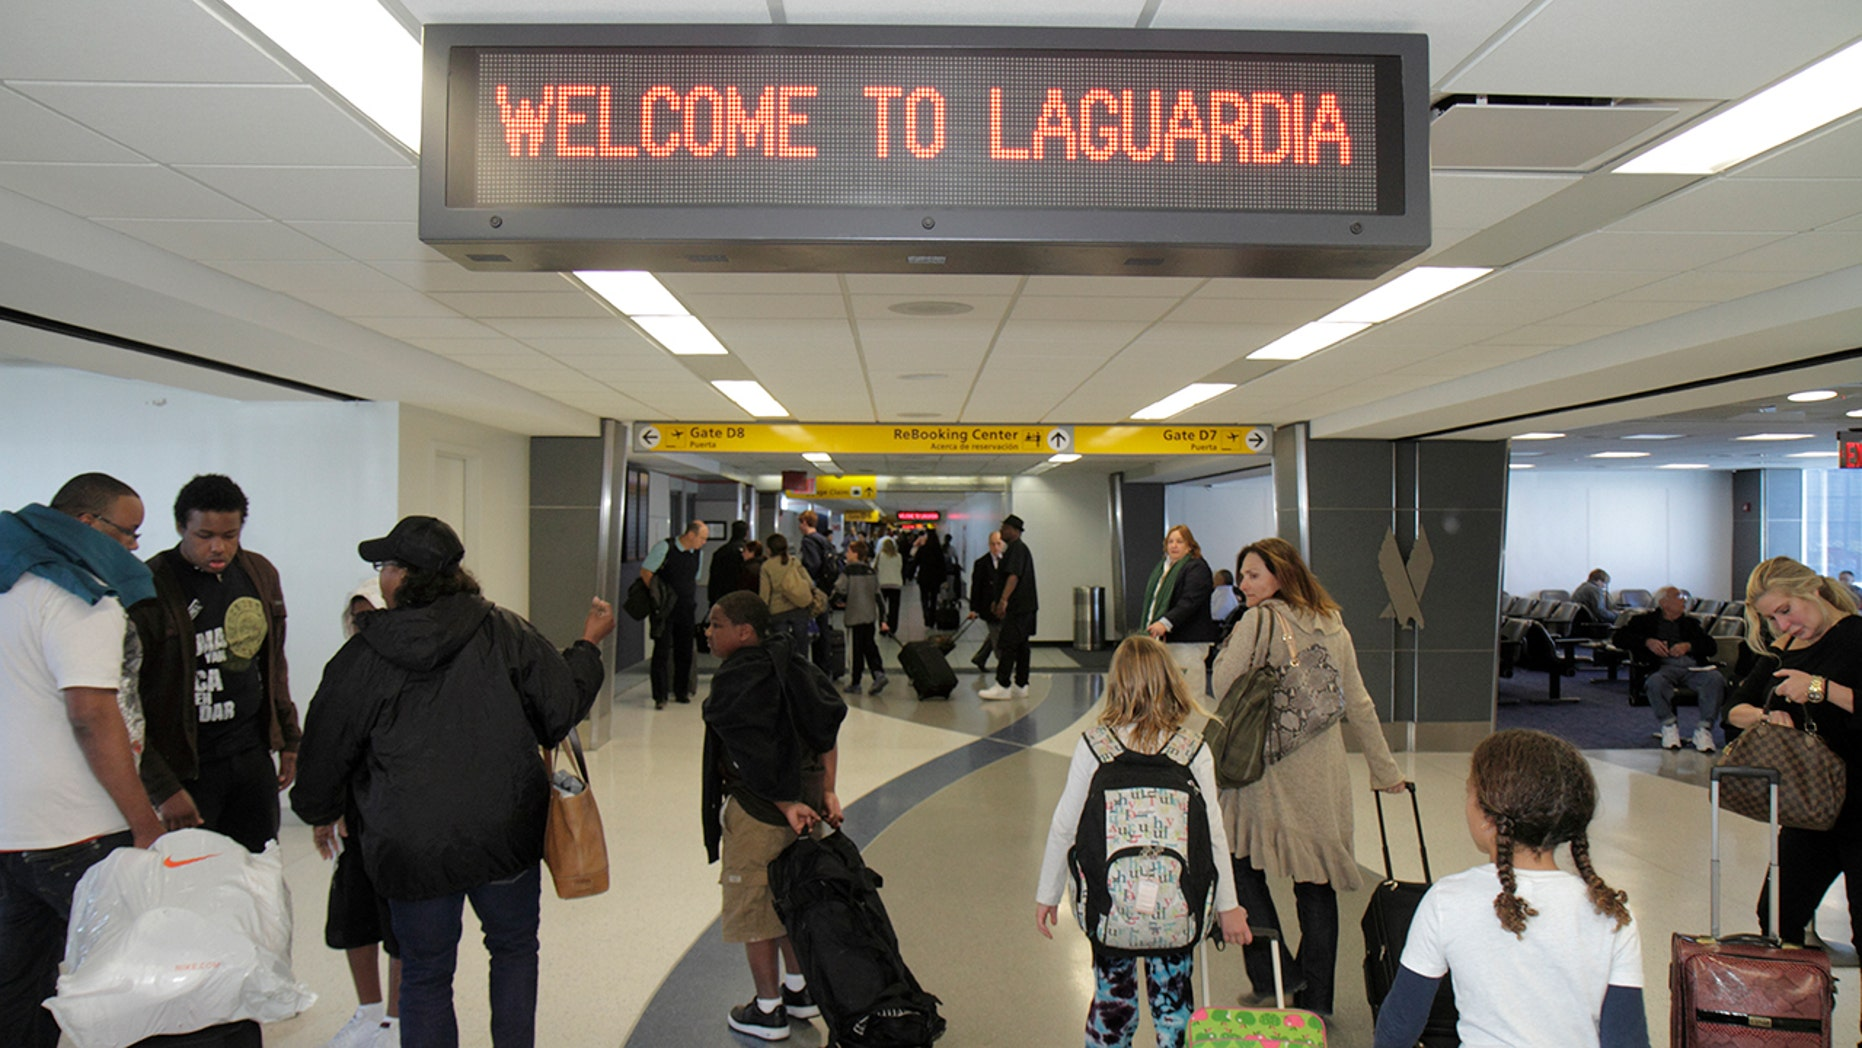 Both LaGuardia Airport in the New York City borough of Queens and Newark Liberty International Airport in New Jersey ranked last in their respective categories.